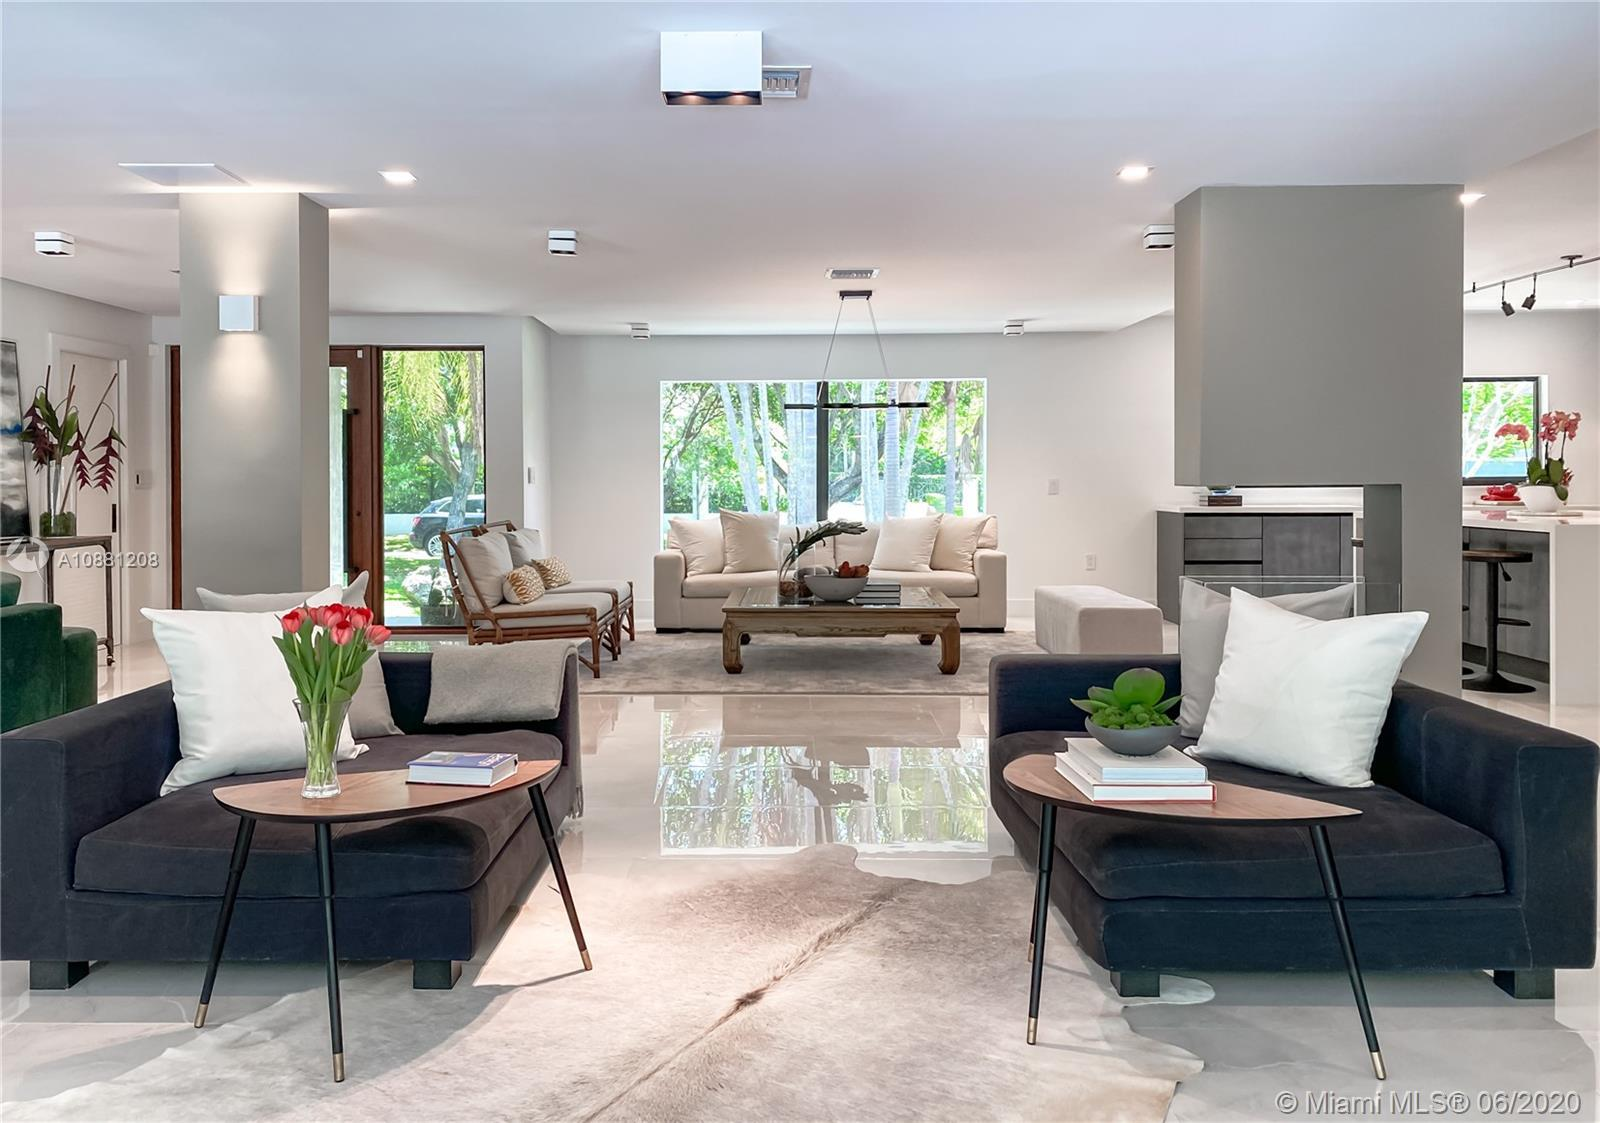 Fully remodeled home in Pinecrest. This residence offers a spacious and bright living area, a state-